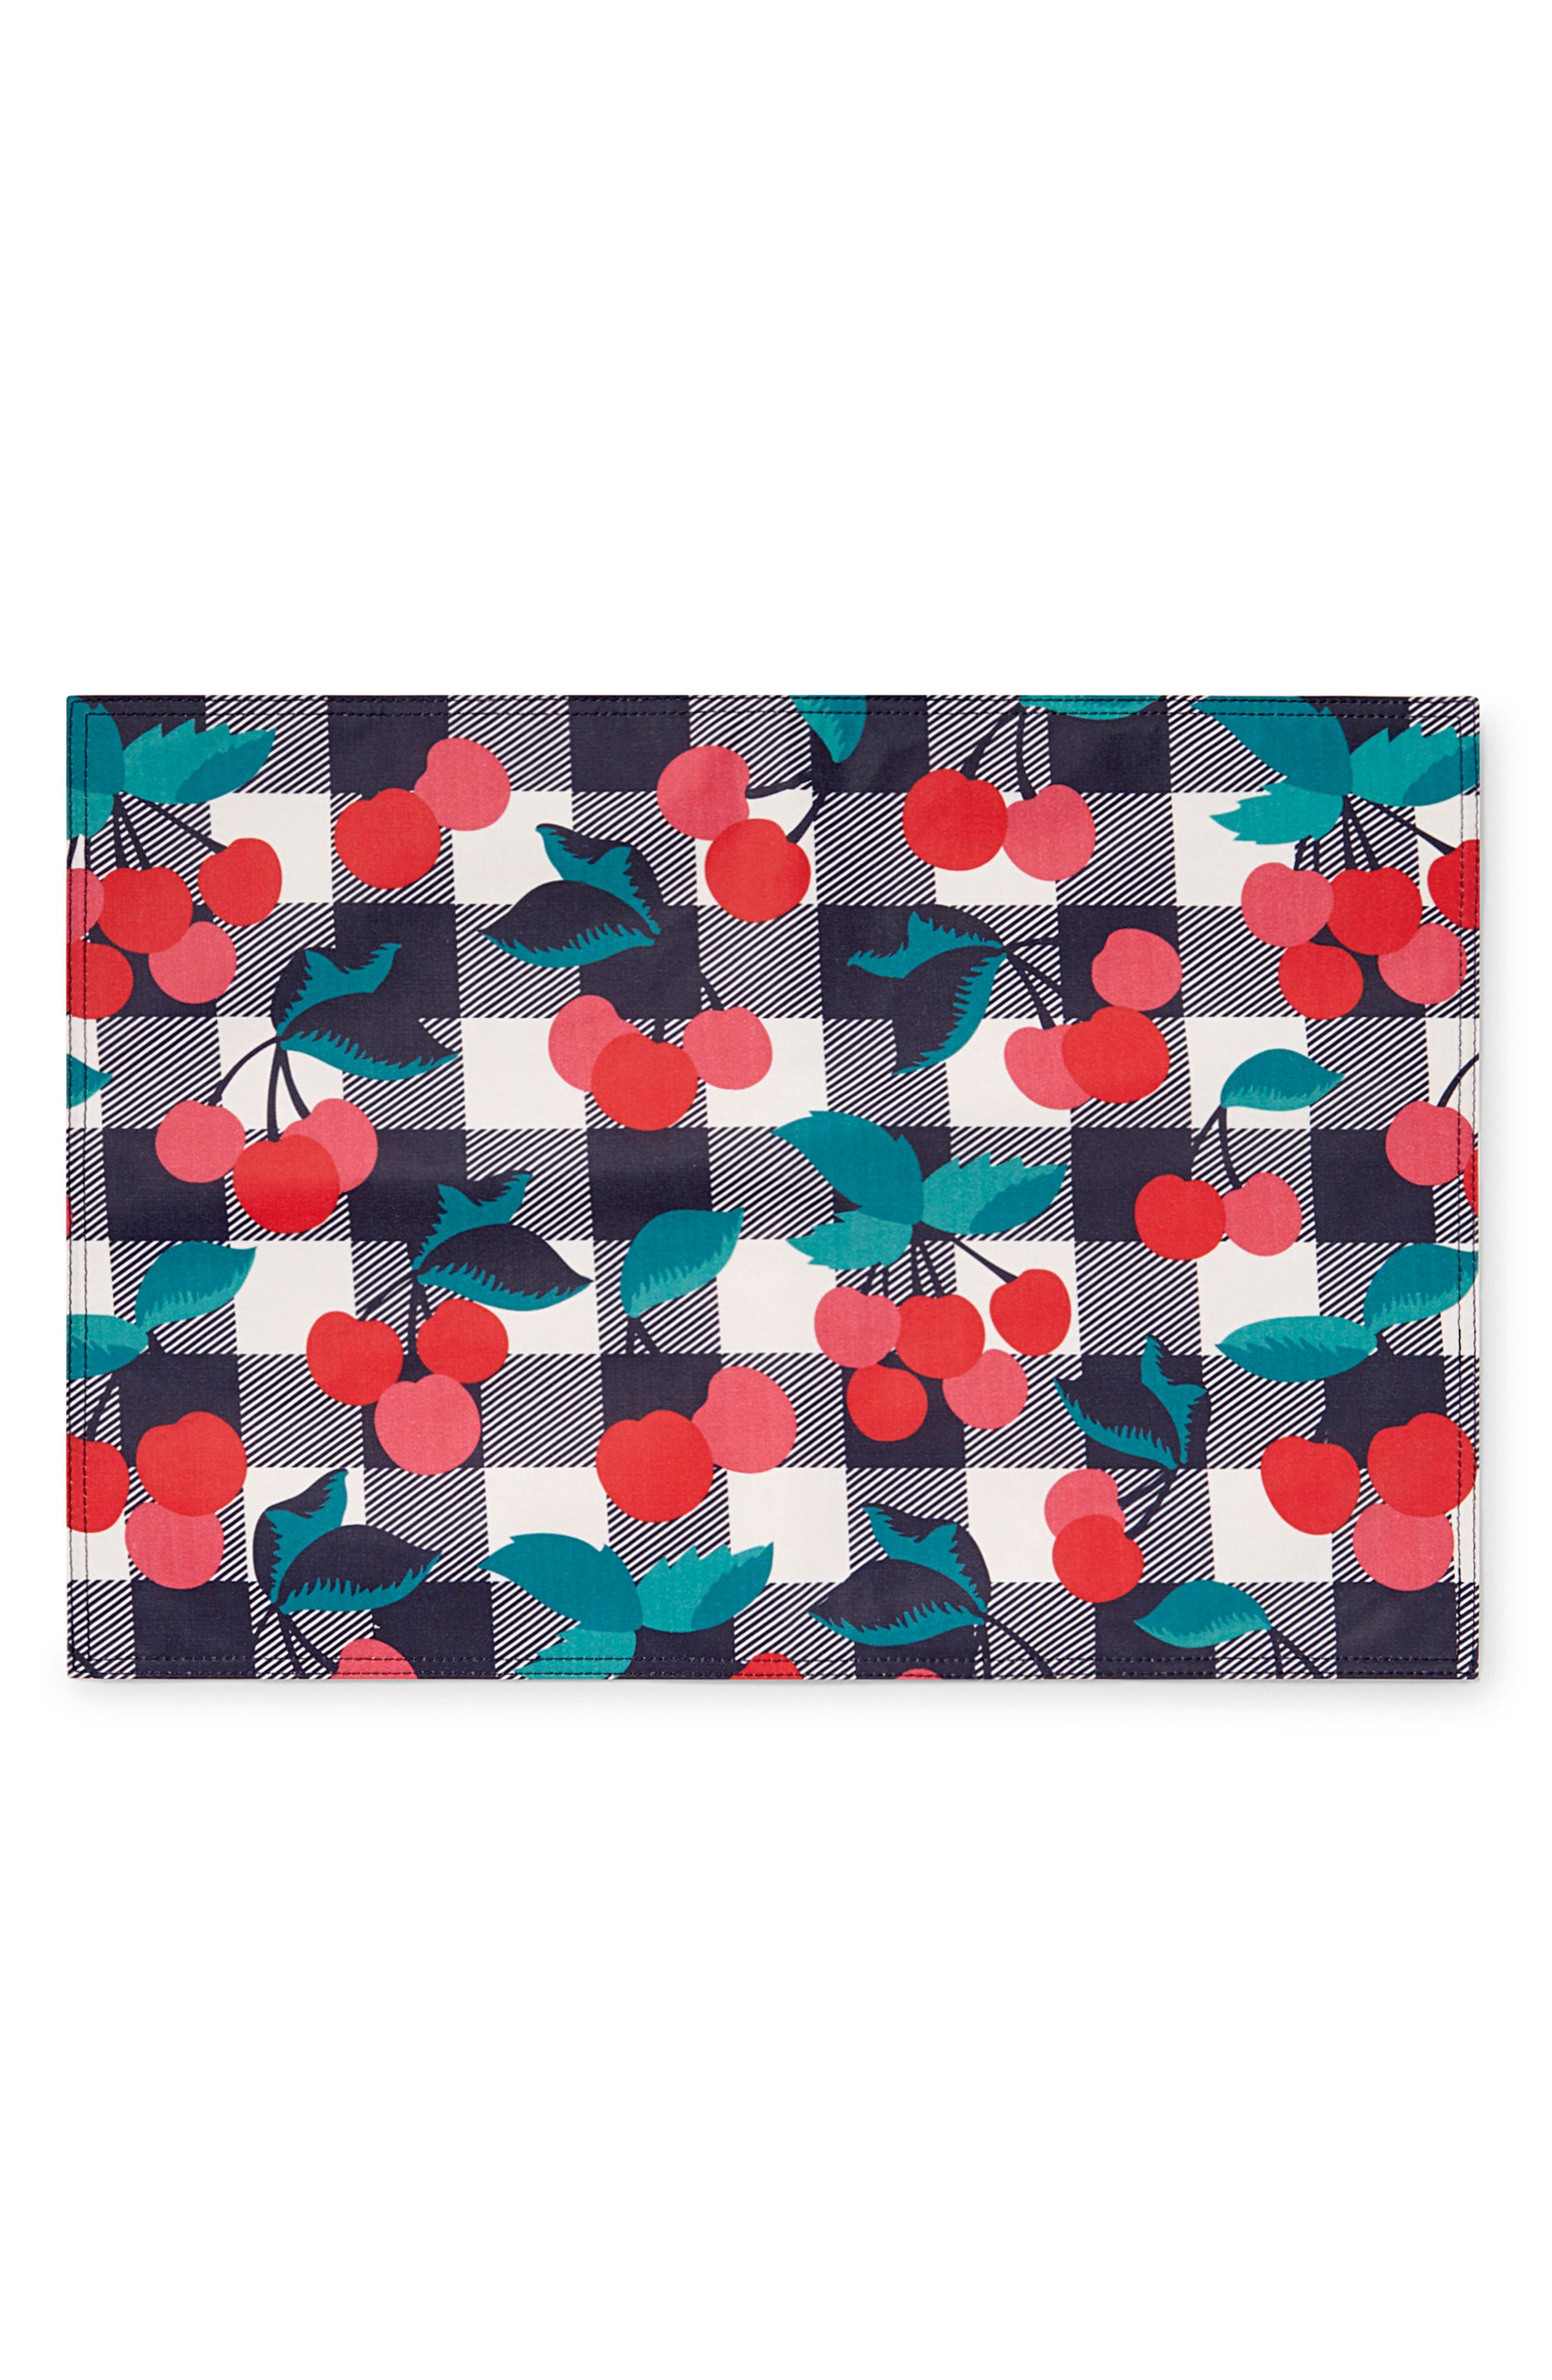 Set of 4 Cherry Print Placemats,                         Main,                         color, Cherry